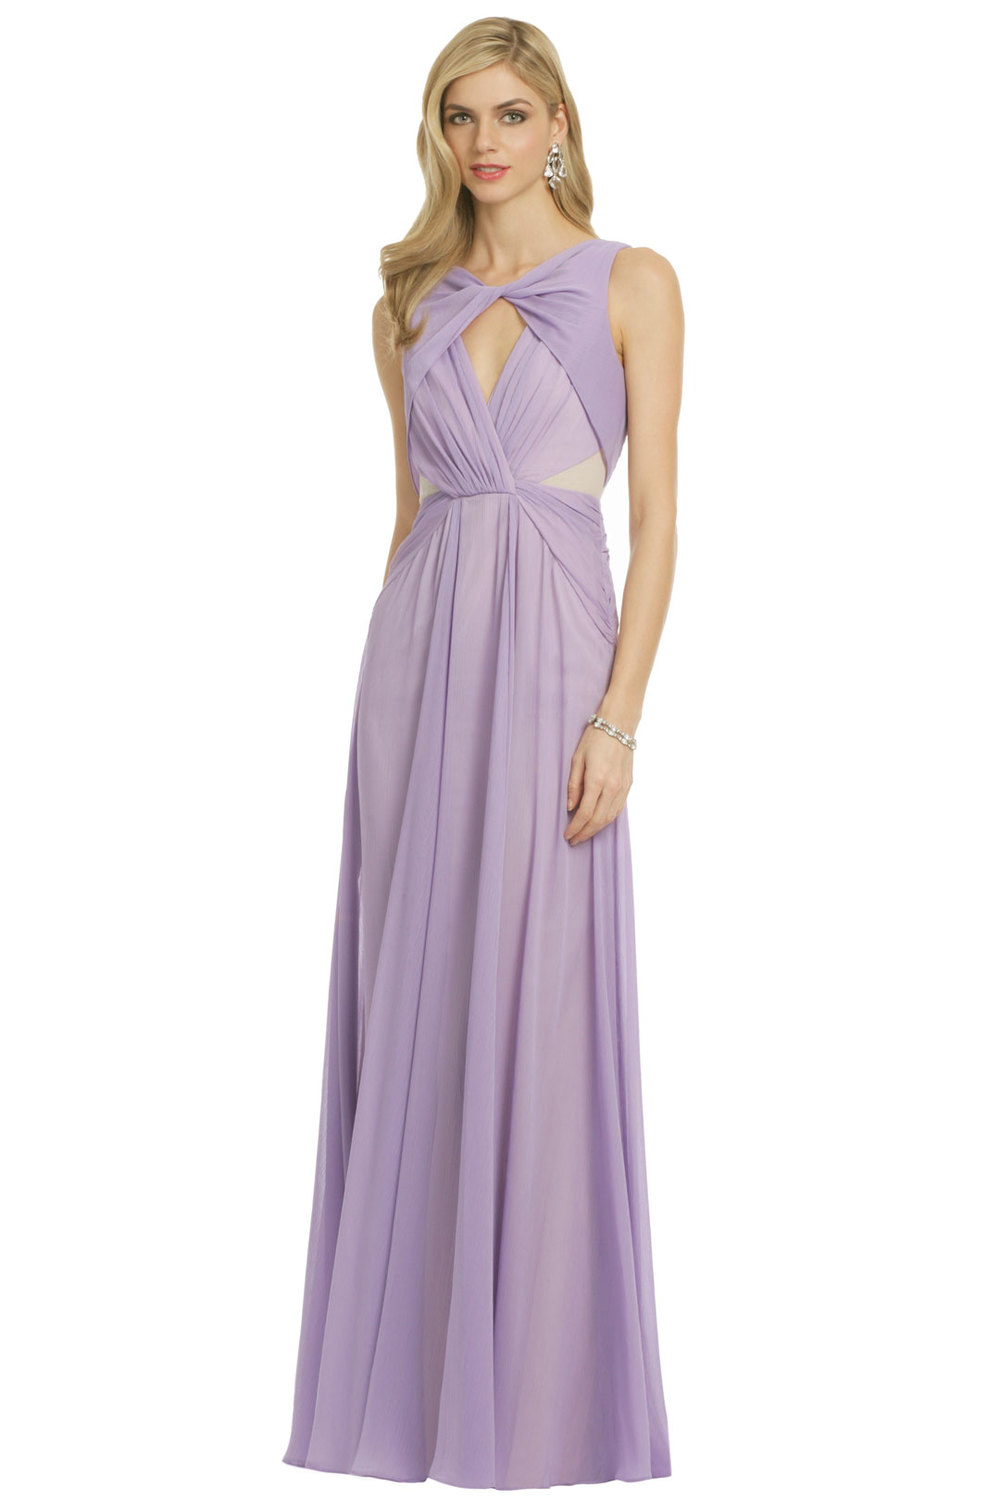 Pastel Petunia gown by Badgley Mischka. Rent the Runway. $80 rental.